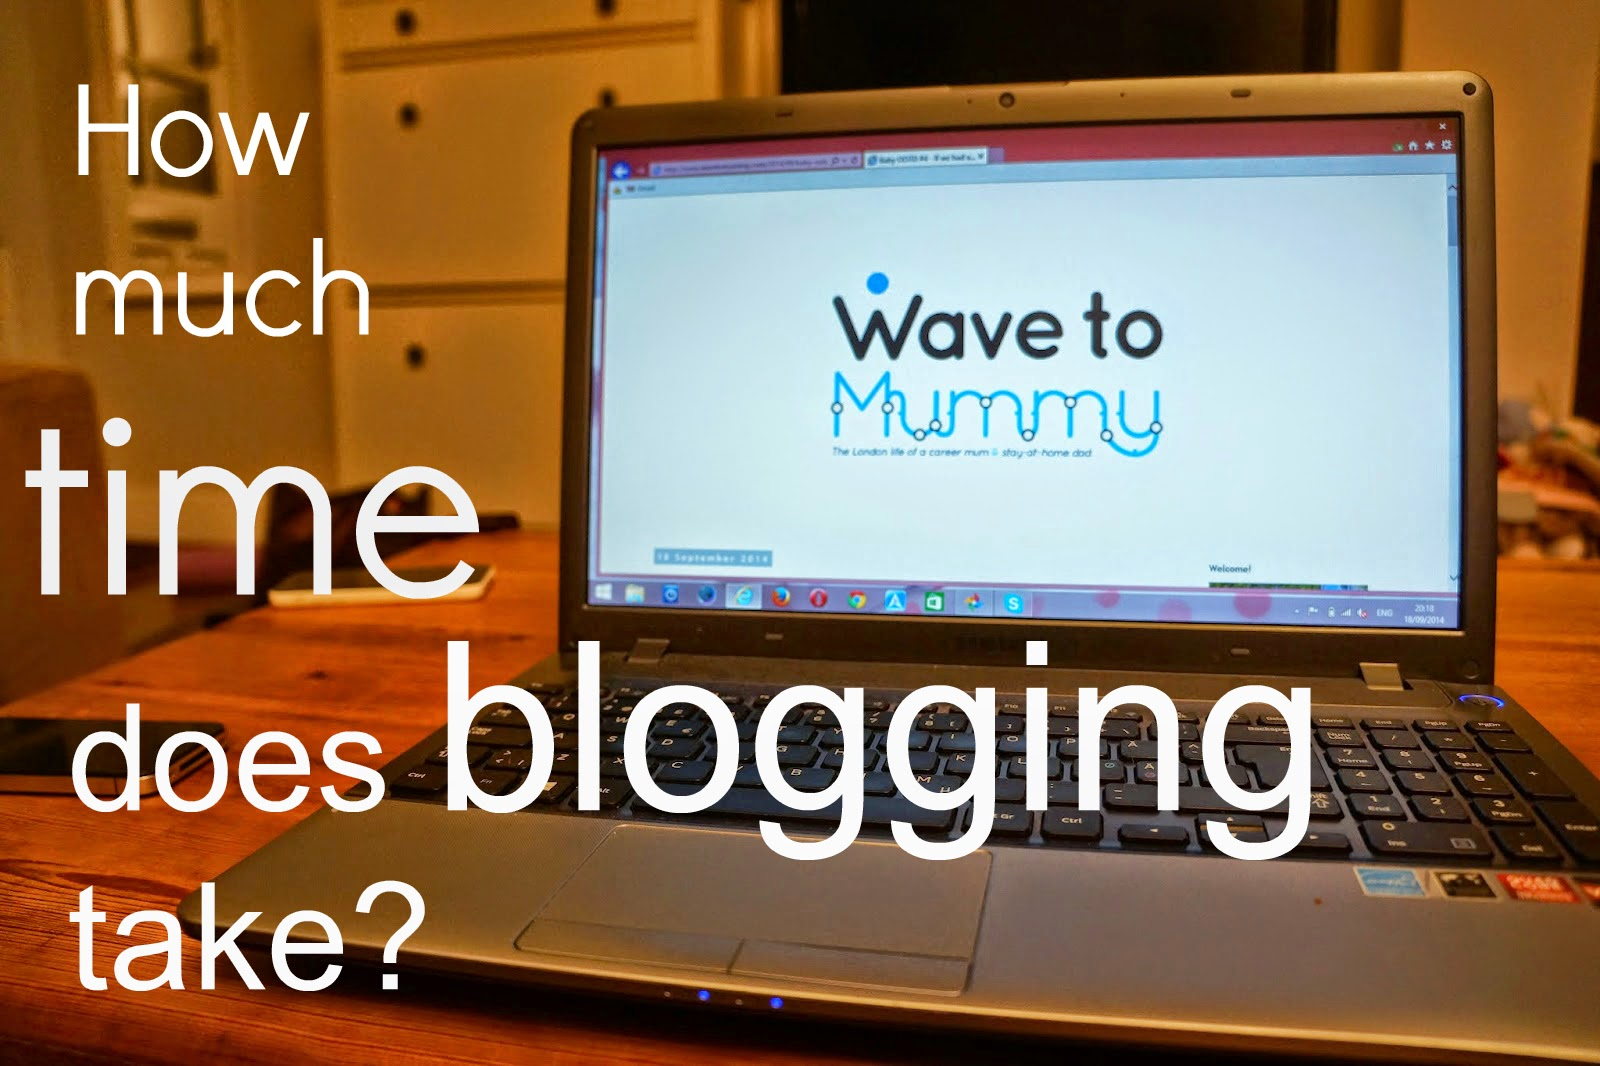 http://www.wavetomummy.com/2014/09/how-much-time-does-blogging-take.html